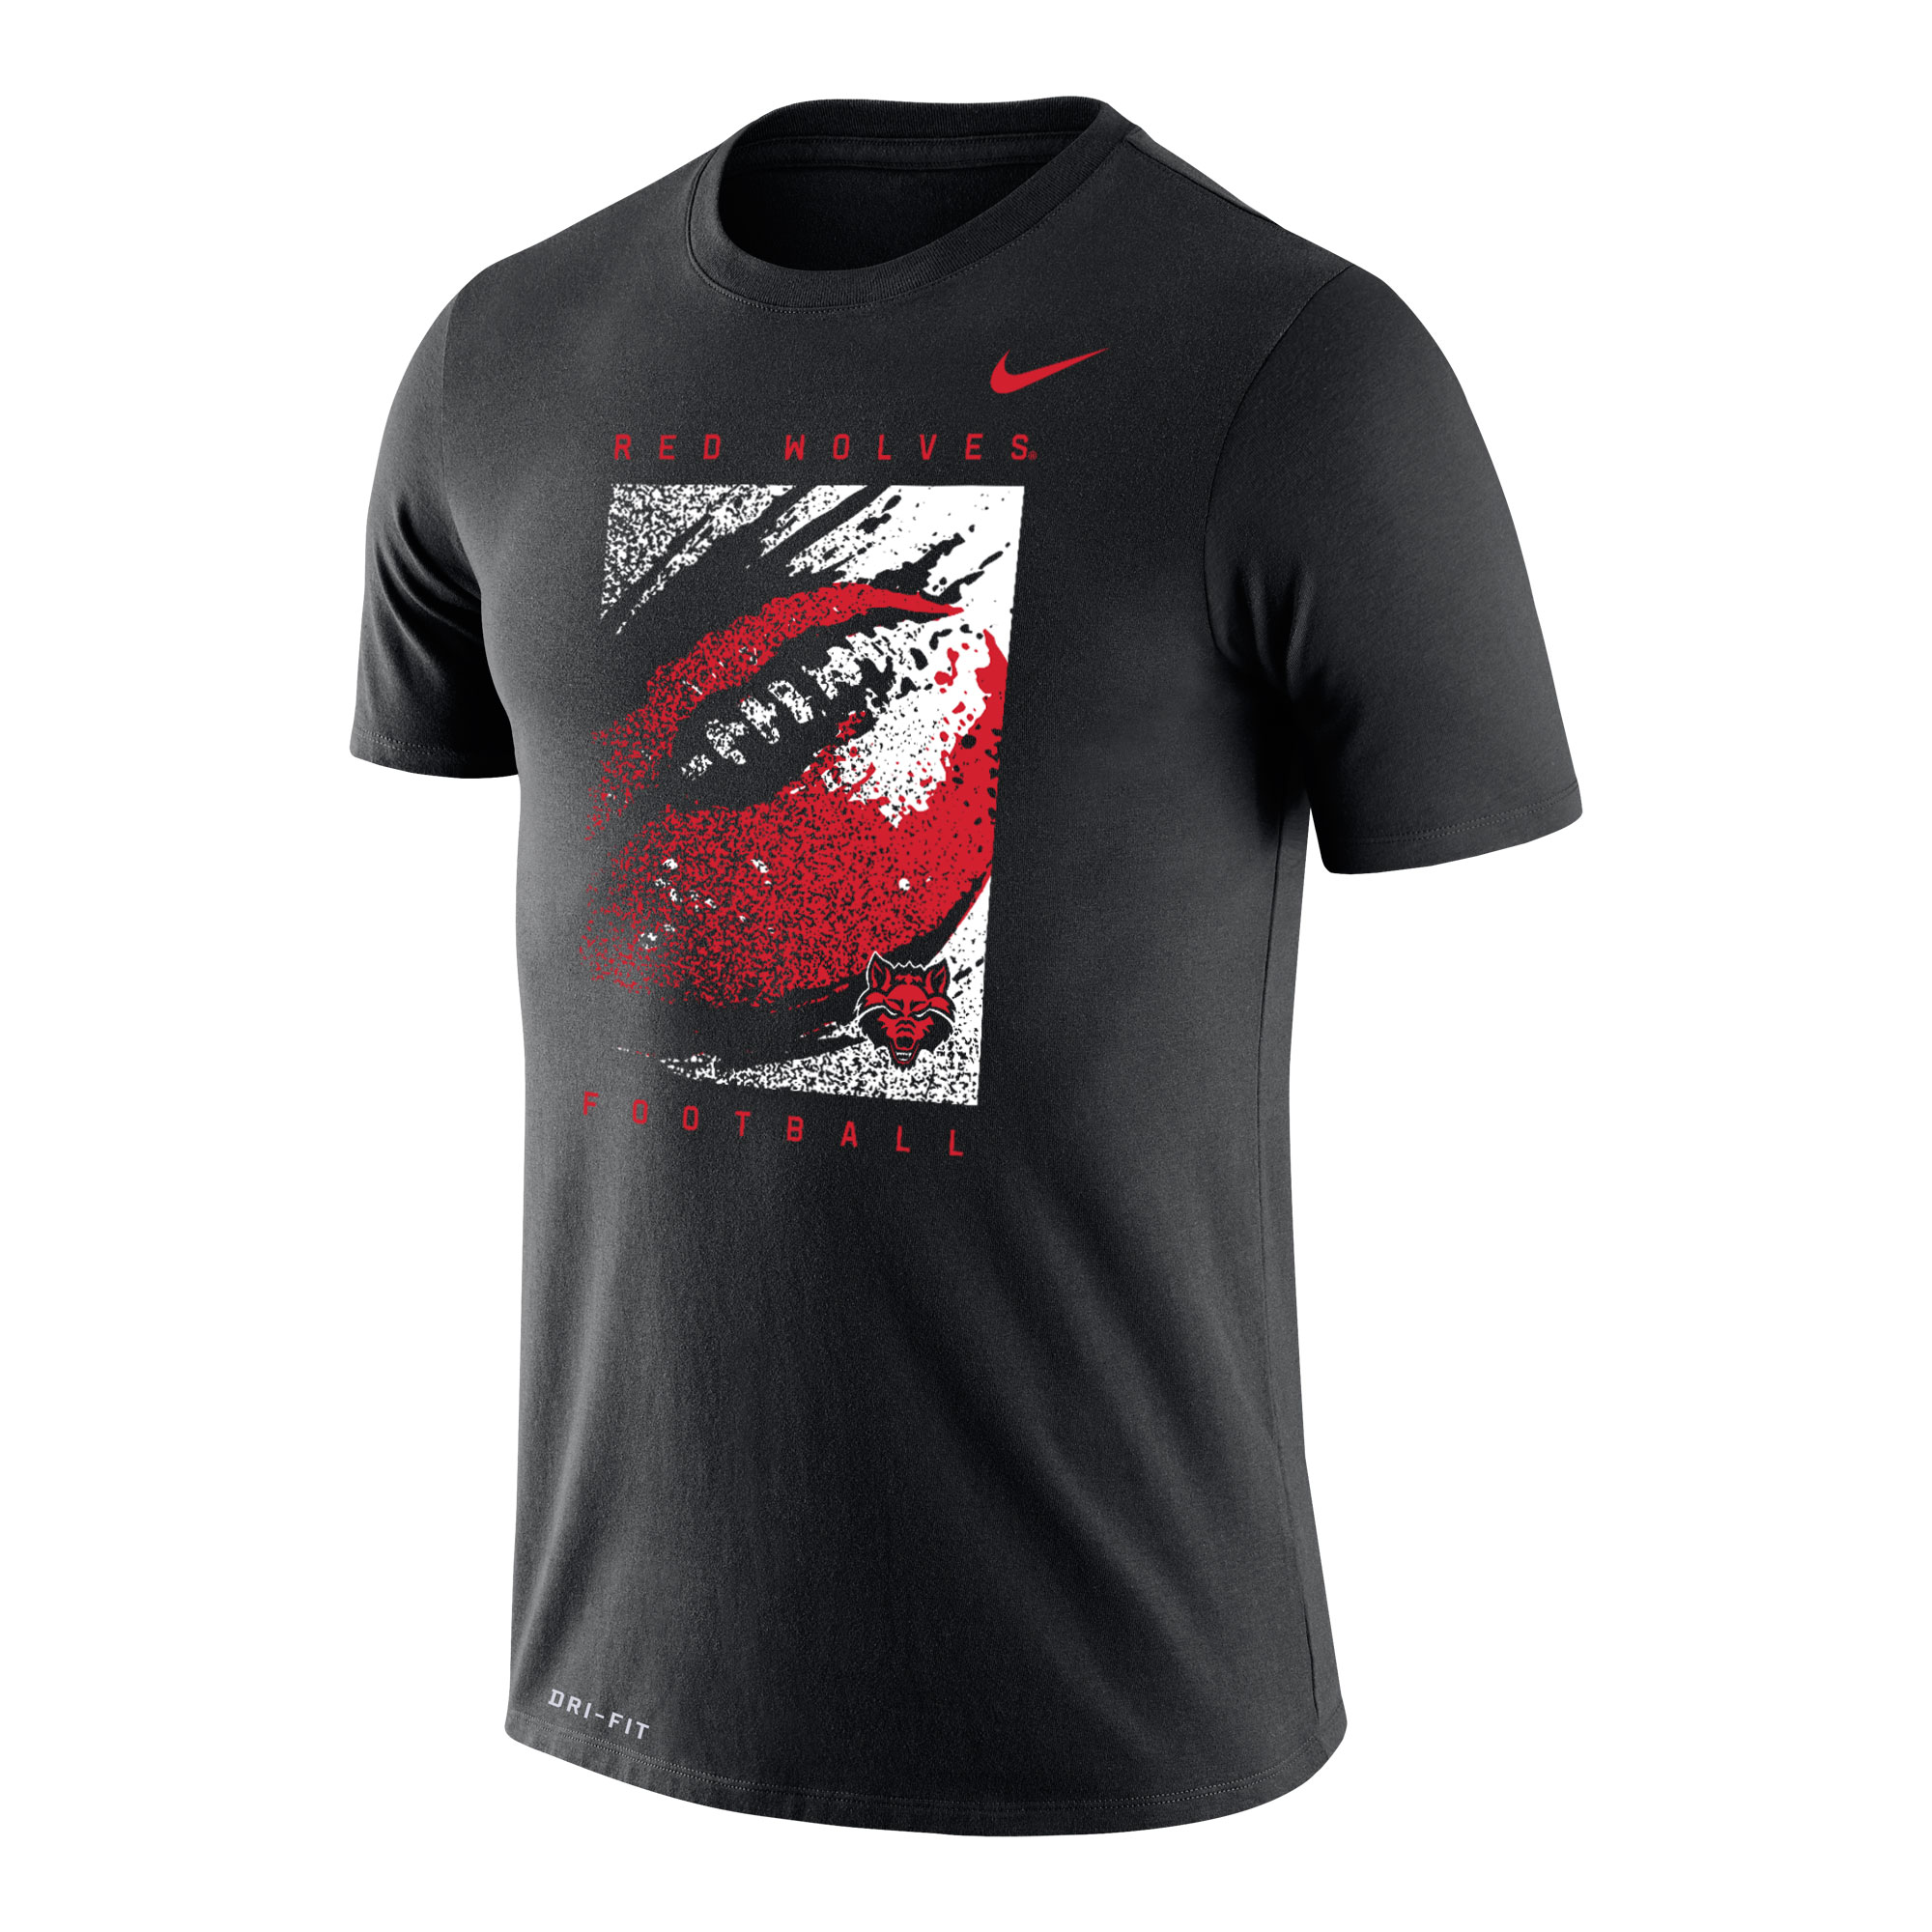 Red Wolves Football Dri-FIT Cotton SS Tee